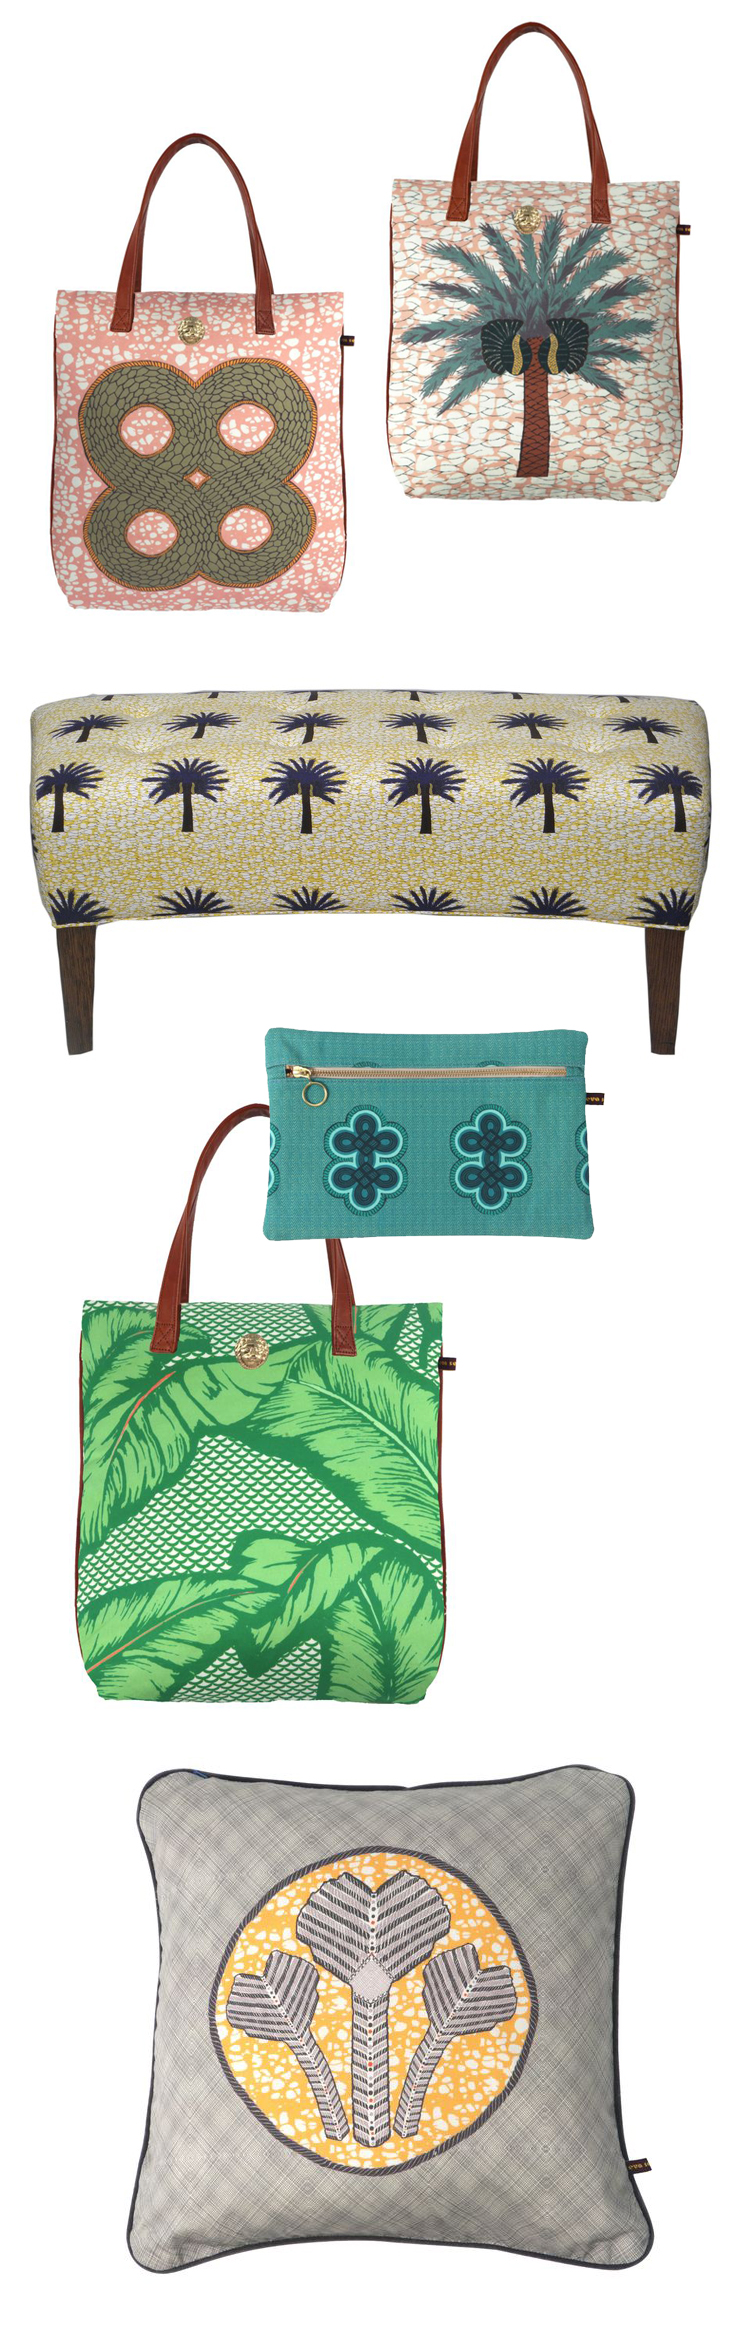 African-Furniture-Decor-Bags-Eva-Sonaike